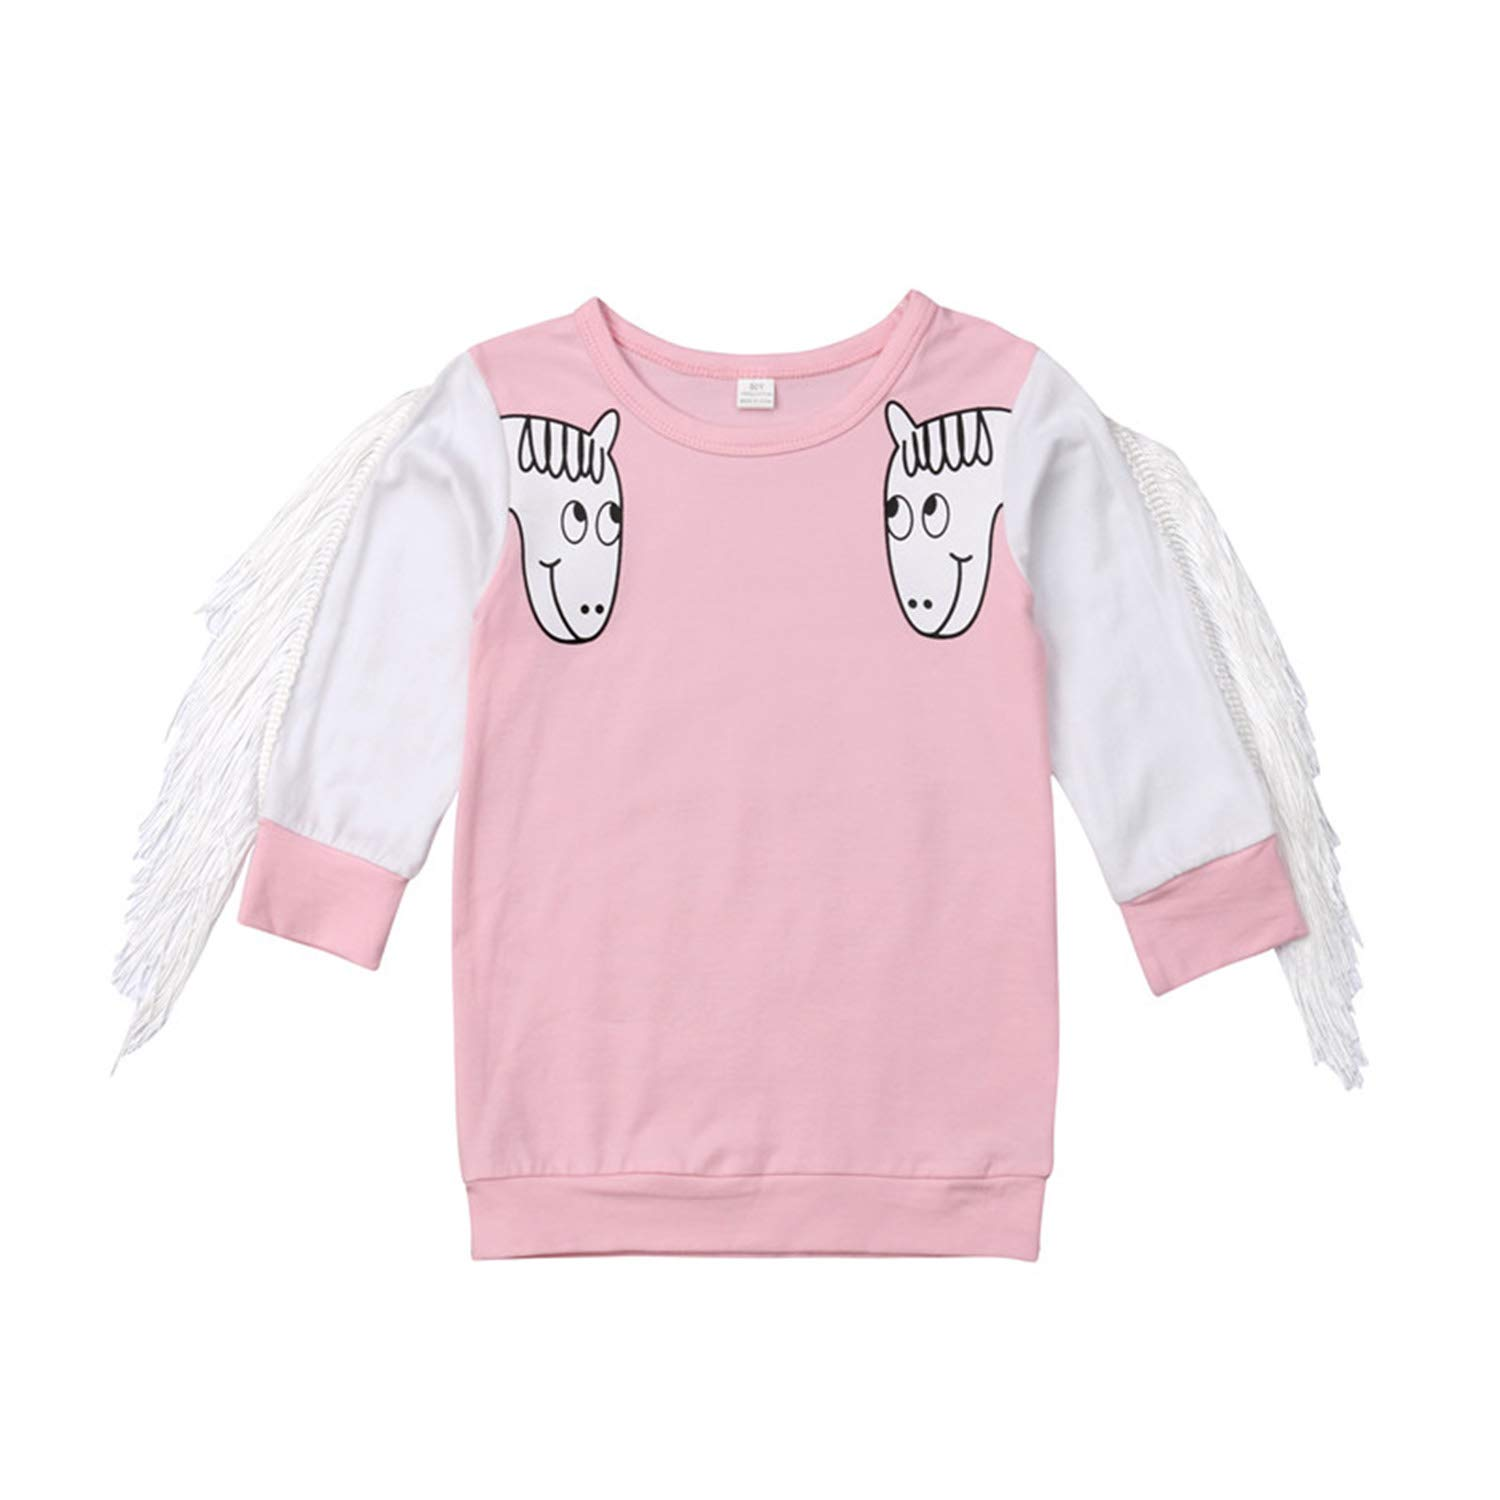 5216d9fac Amazon.com: freedomer Kids Baby Girls Clothes Animal Print Round Neck  Tassel Long Sleeve Casual Toddler Lovely Cotton Party Mini Dresses one  Pieces(12M ...